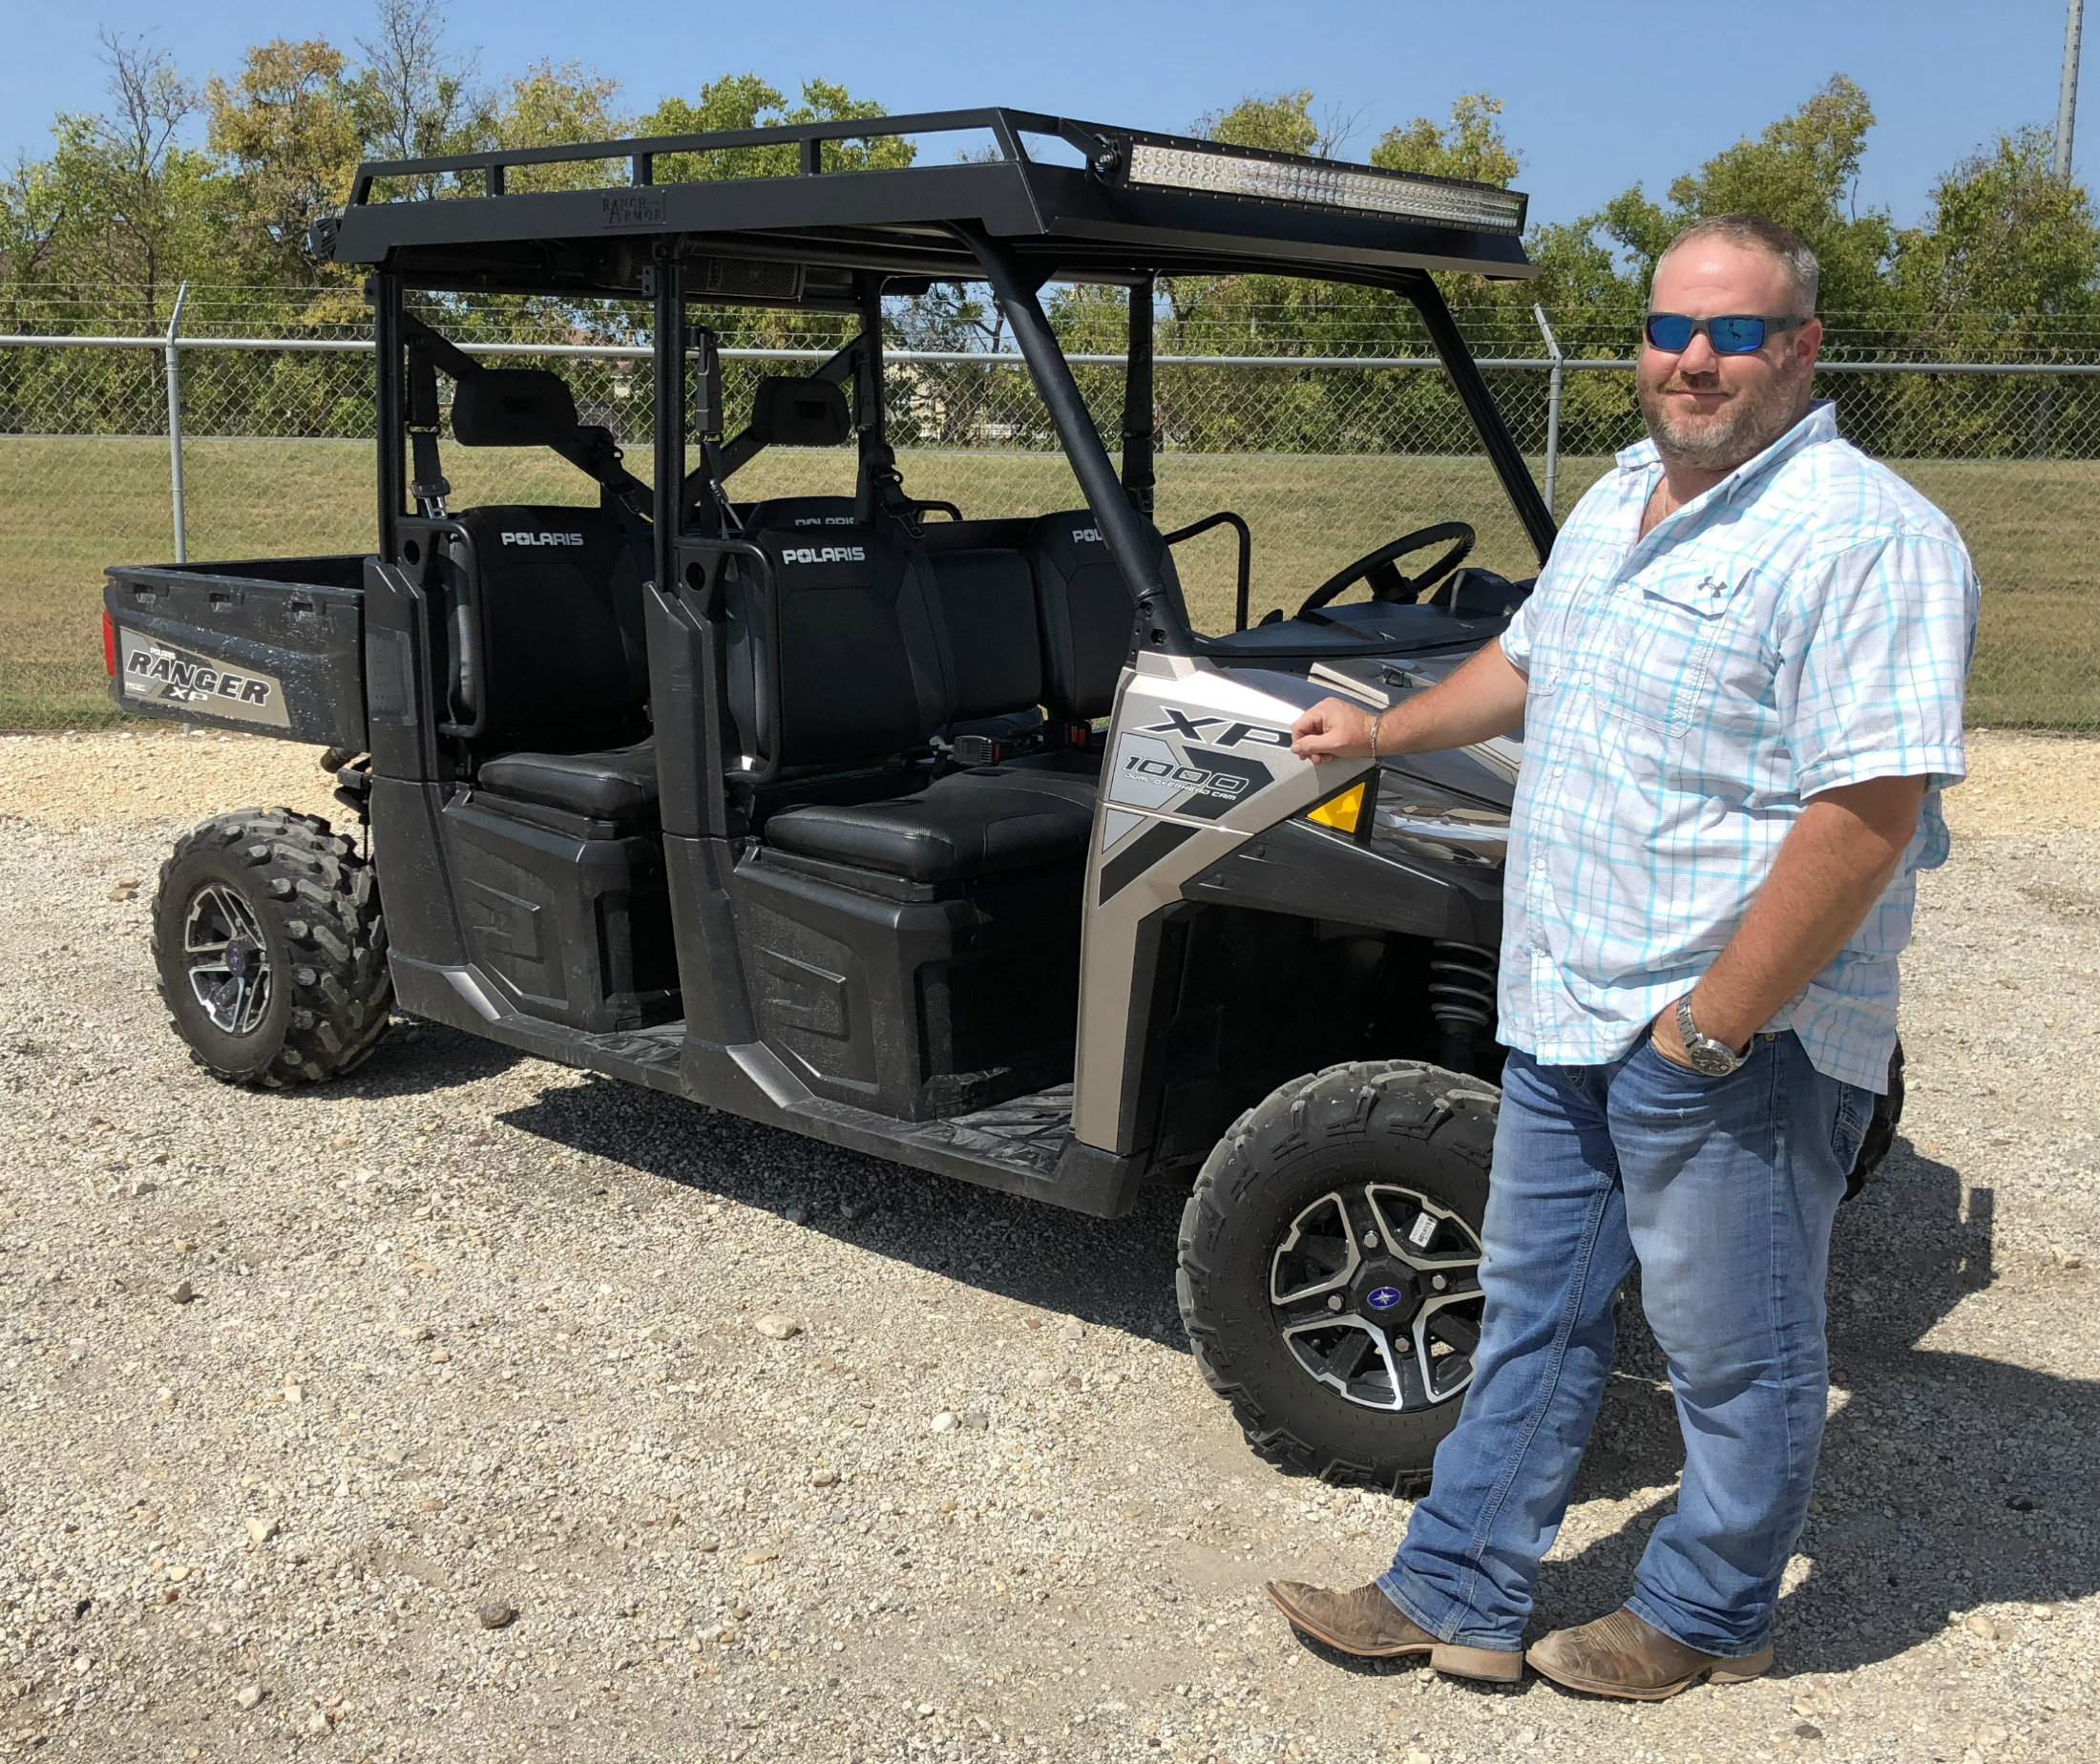 polaris-ranger-1000-crew-roof-metal-top-with-lights-and-sound-bar.jpg